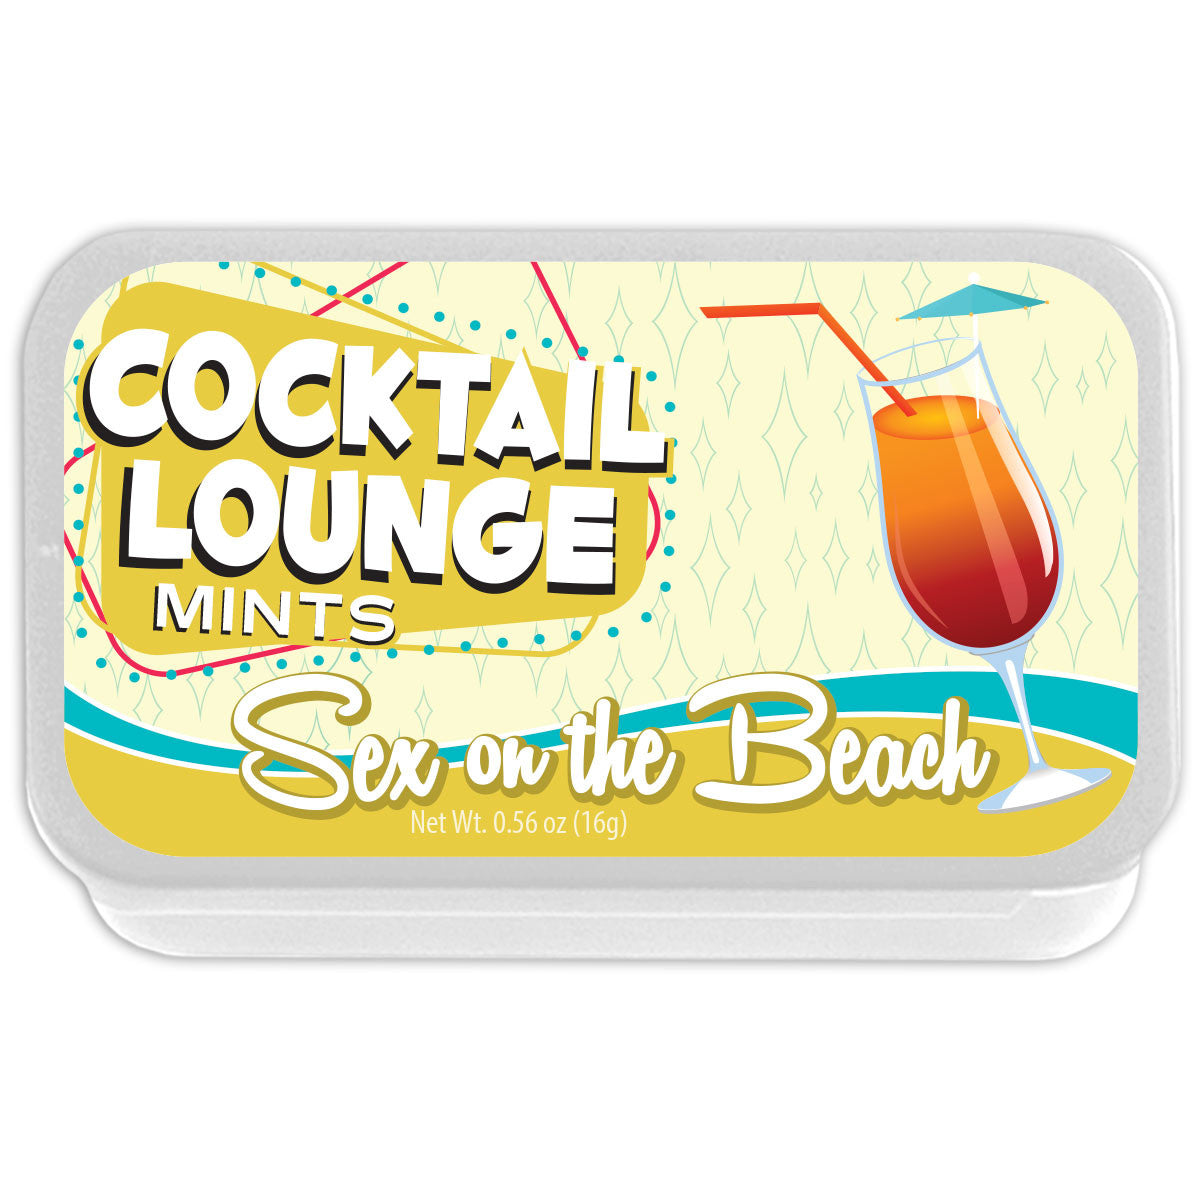 Sex on the Beach Mints - 0891S